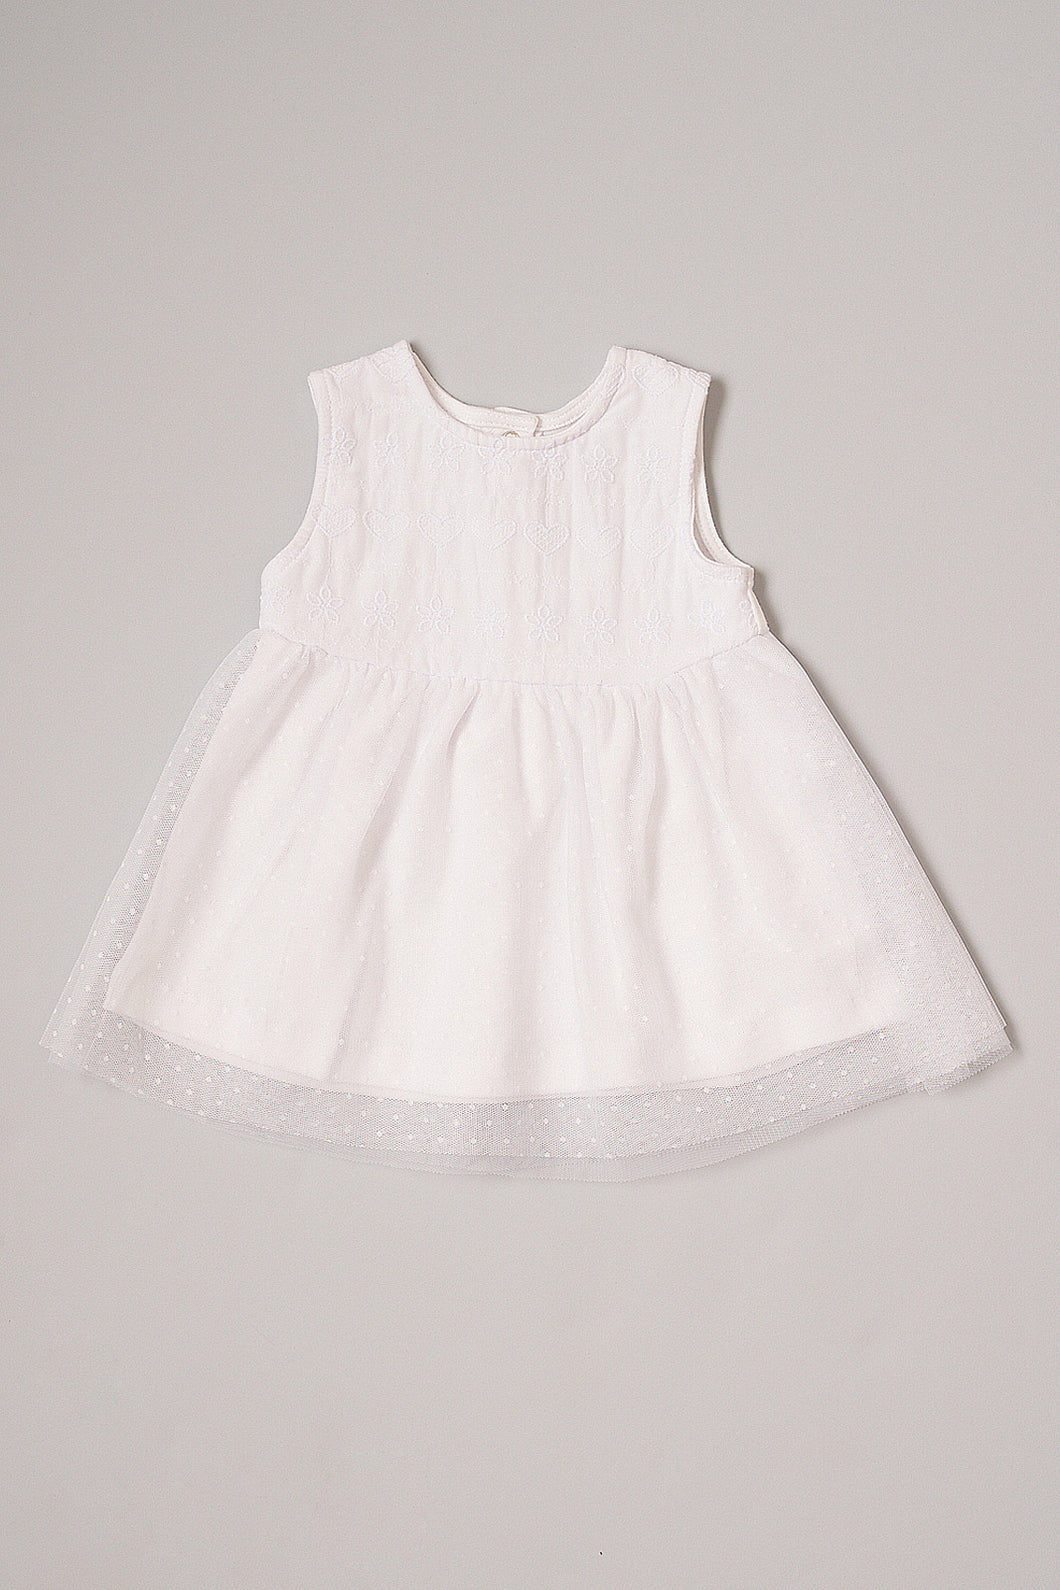 White Broderie Anglaise Sleeveless Dress